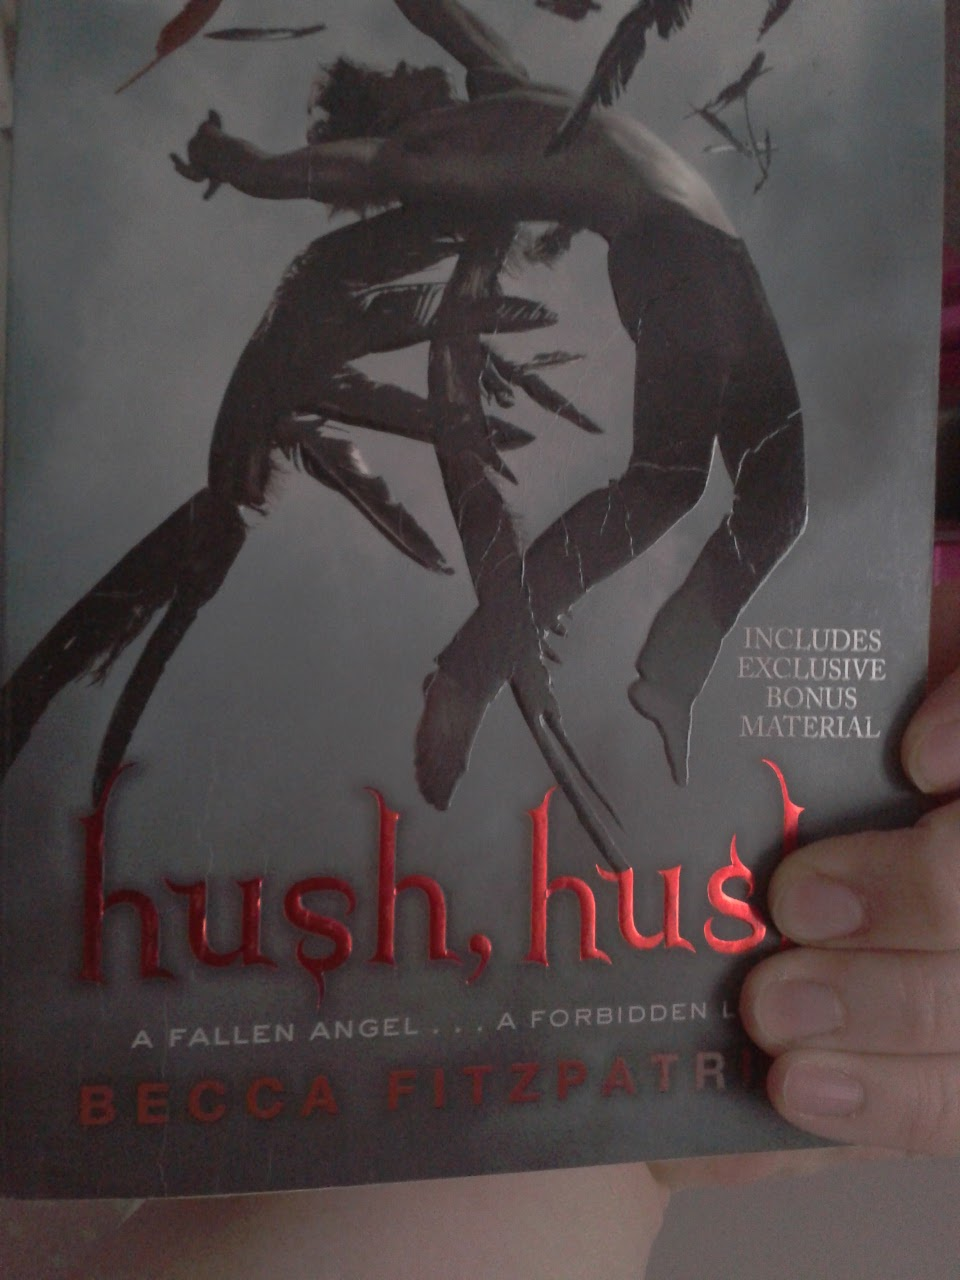 a review of hush hush a fantasy novel by becca fitzpatrick Hush, hush is a 2009 new york times bestselling young adult fantasy novel by becca fitzpatrick and the first book in her hush, hush series the novel receive.